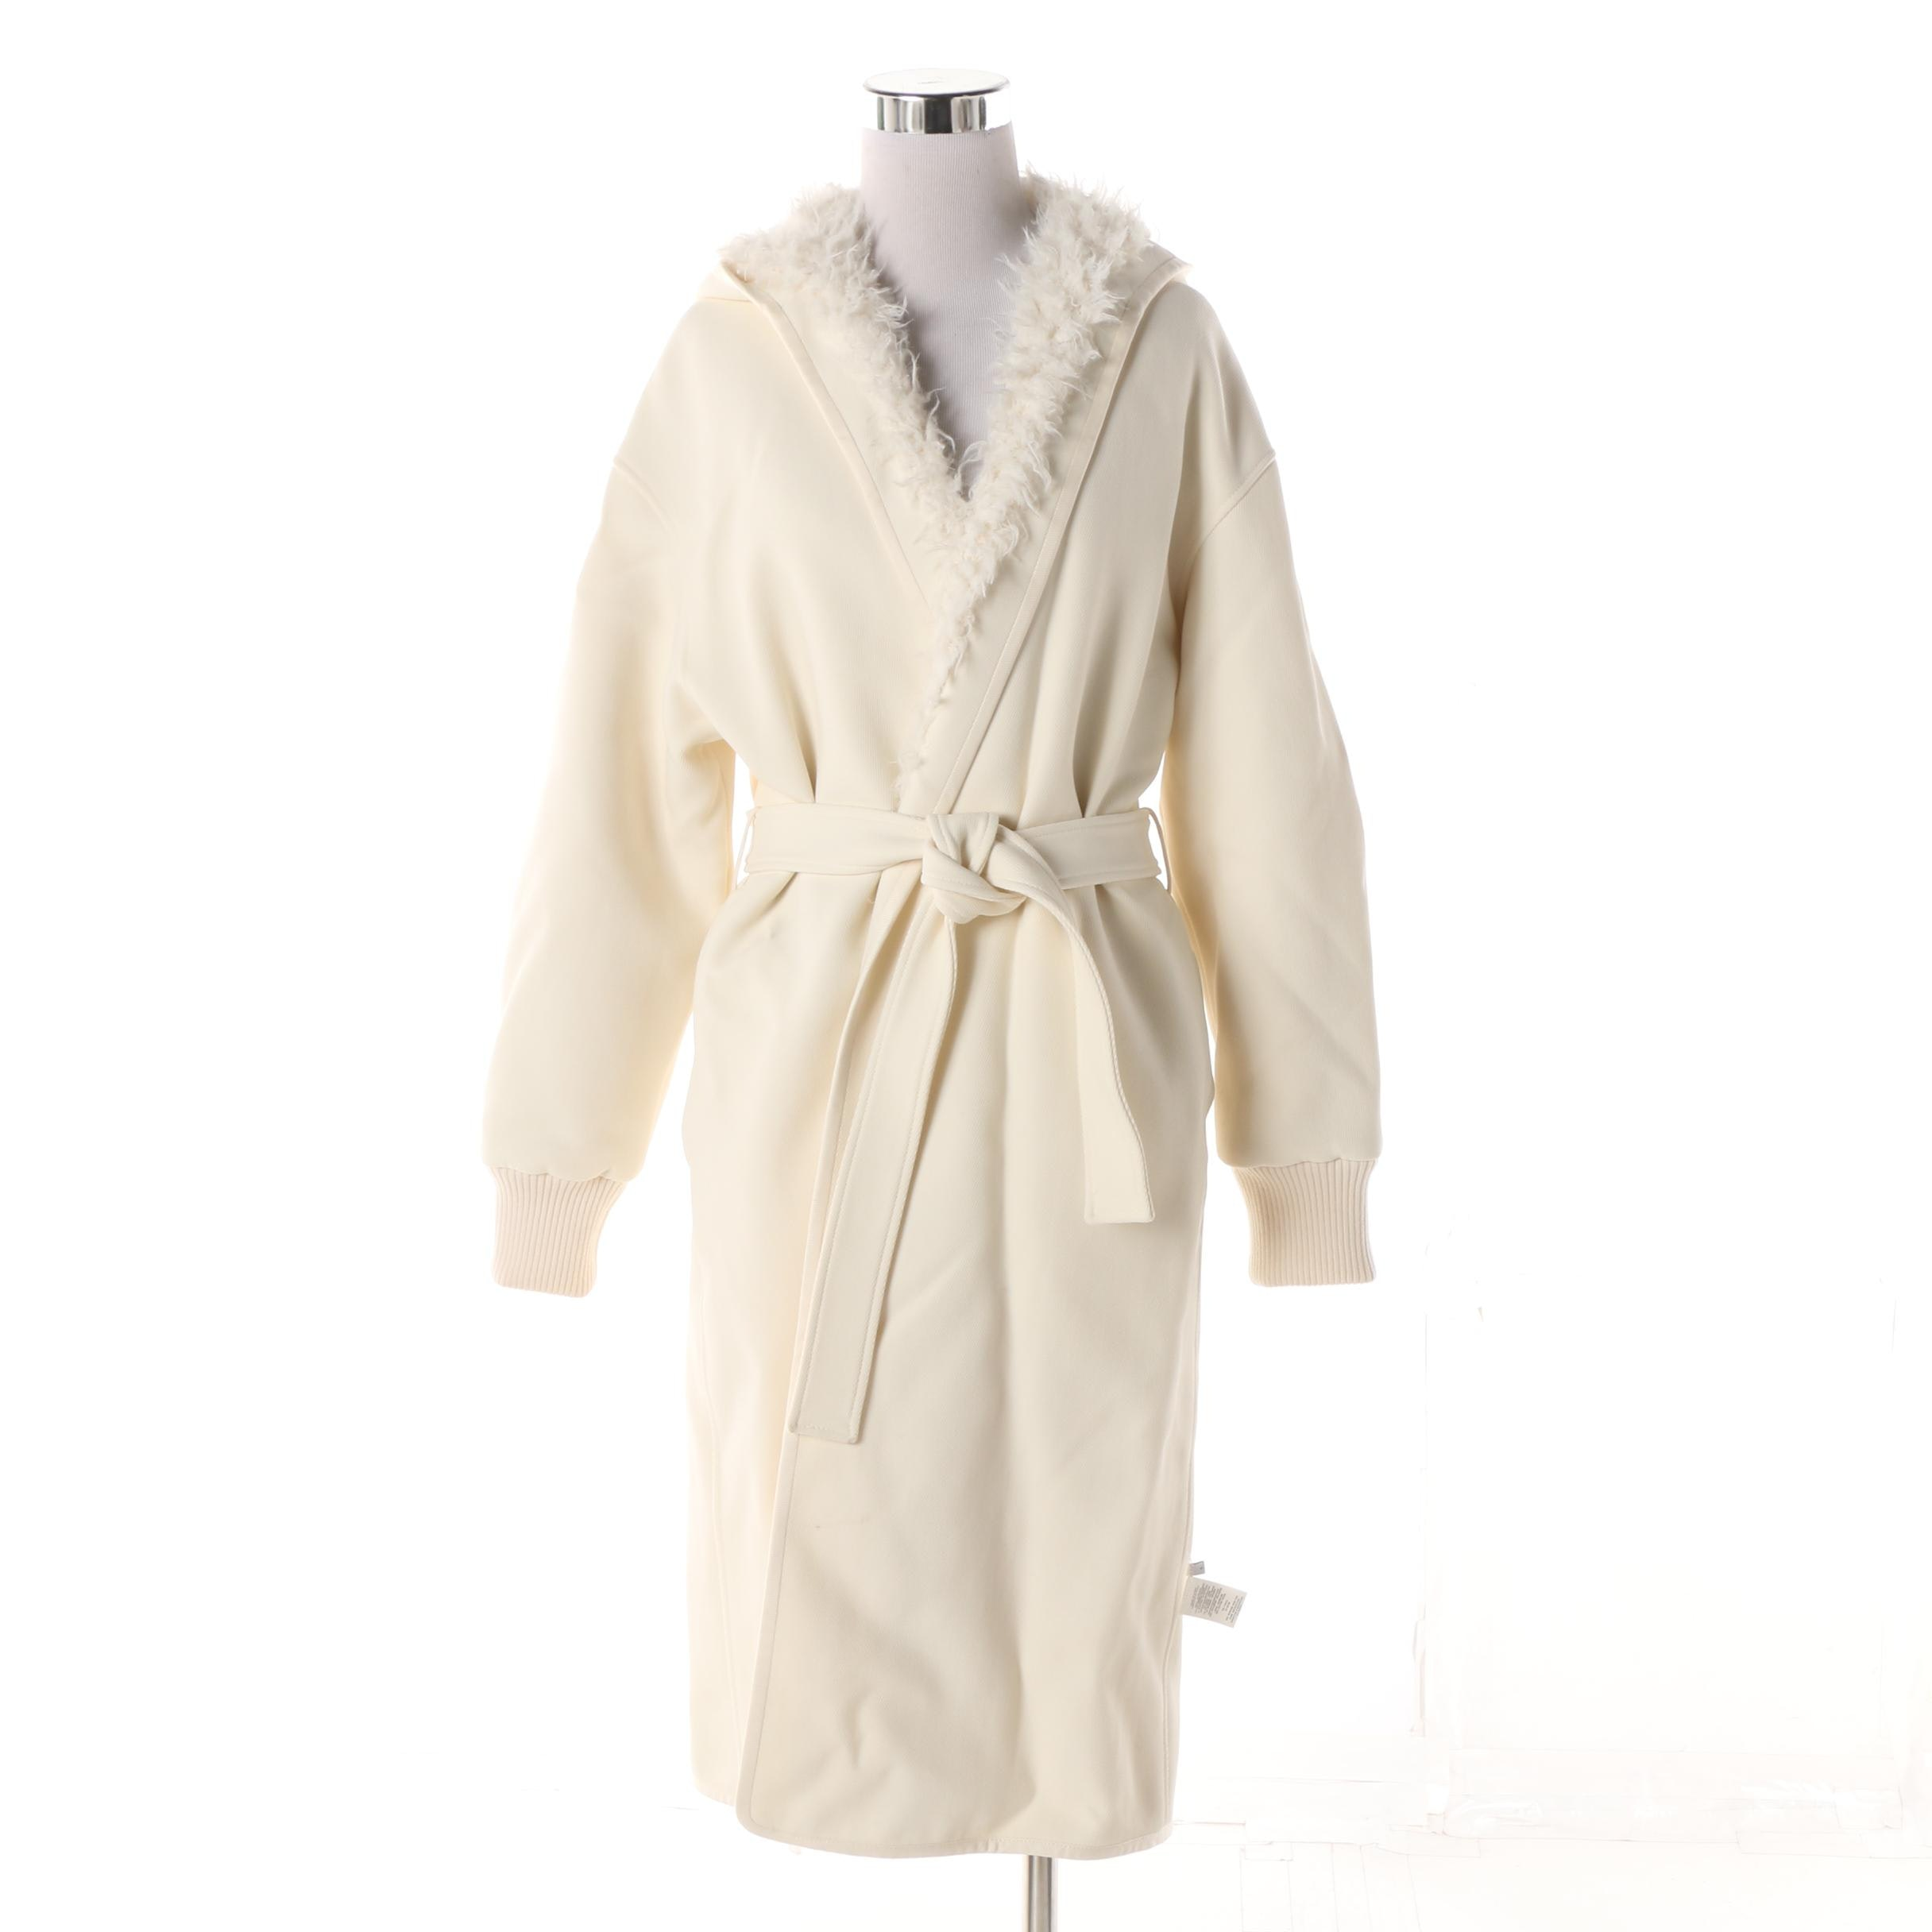 Women's Helmut Lang Off-White Cotton and Faux Fur Reversible Coat from Barneys